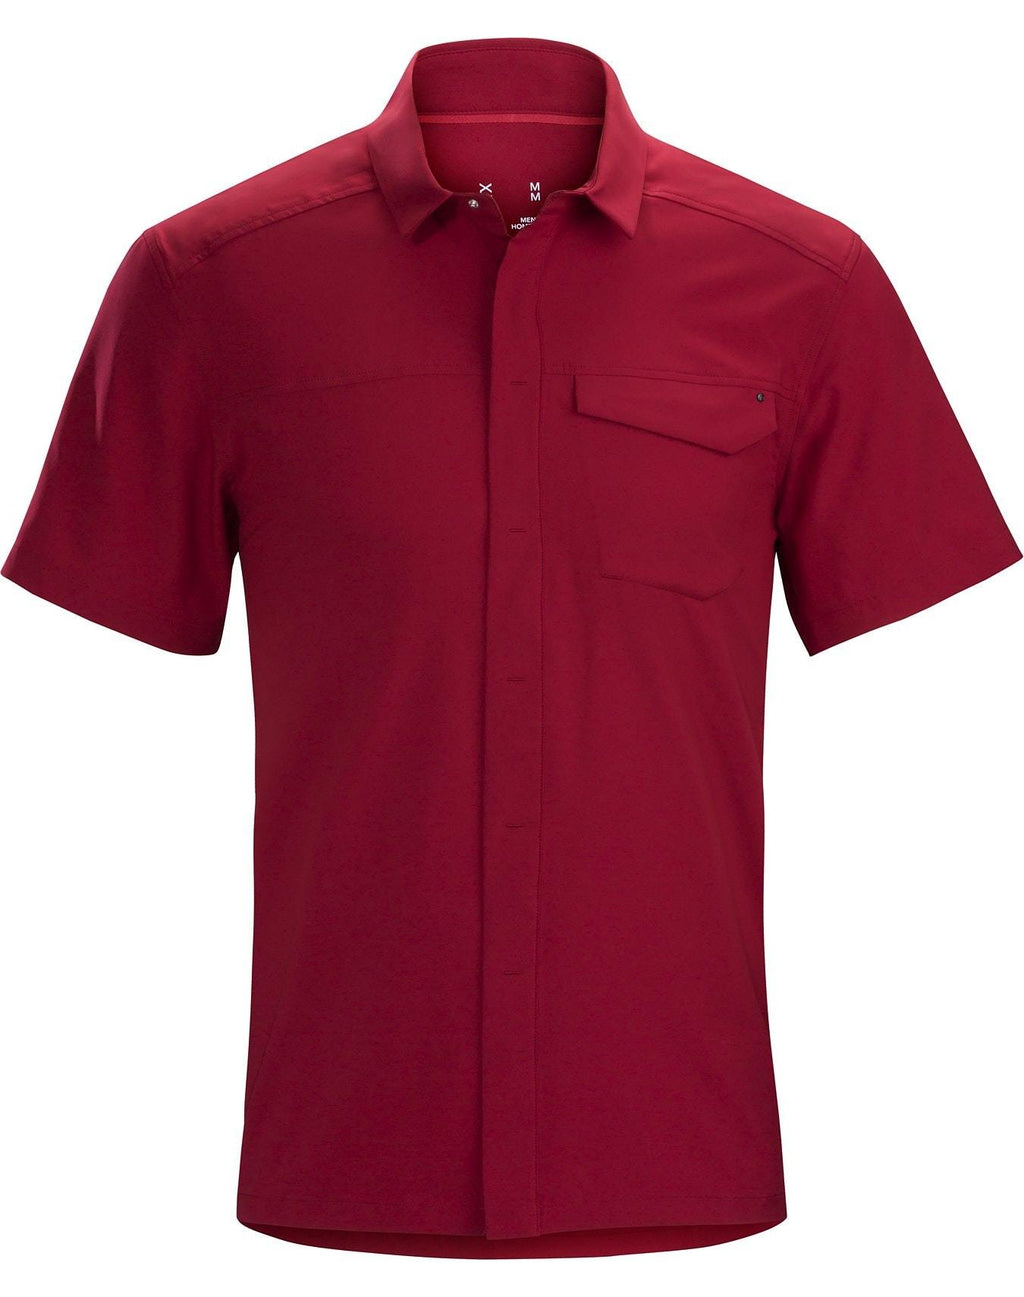 Men's Skyline Short-Sleeve Shirt *CLSL*